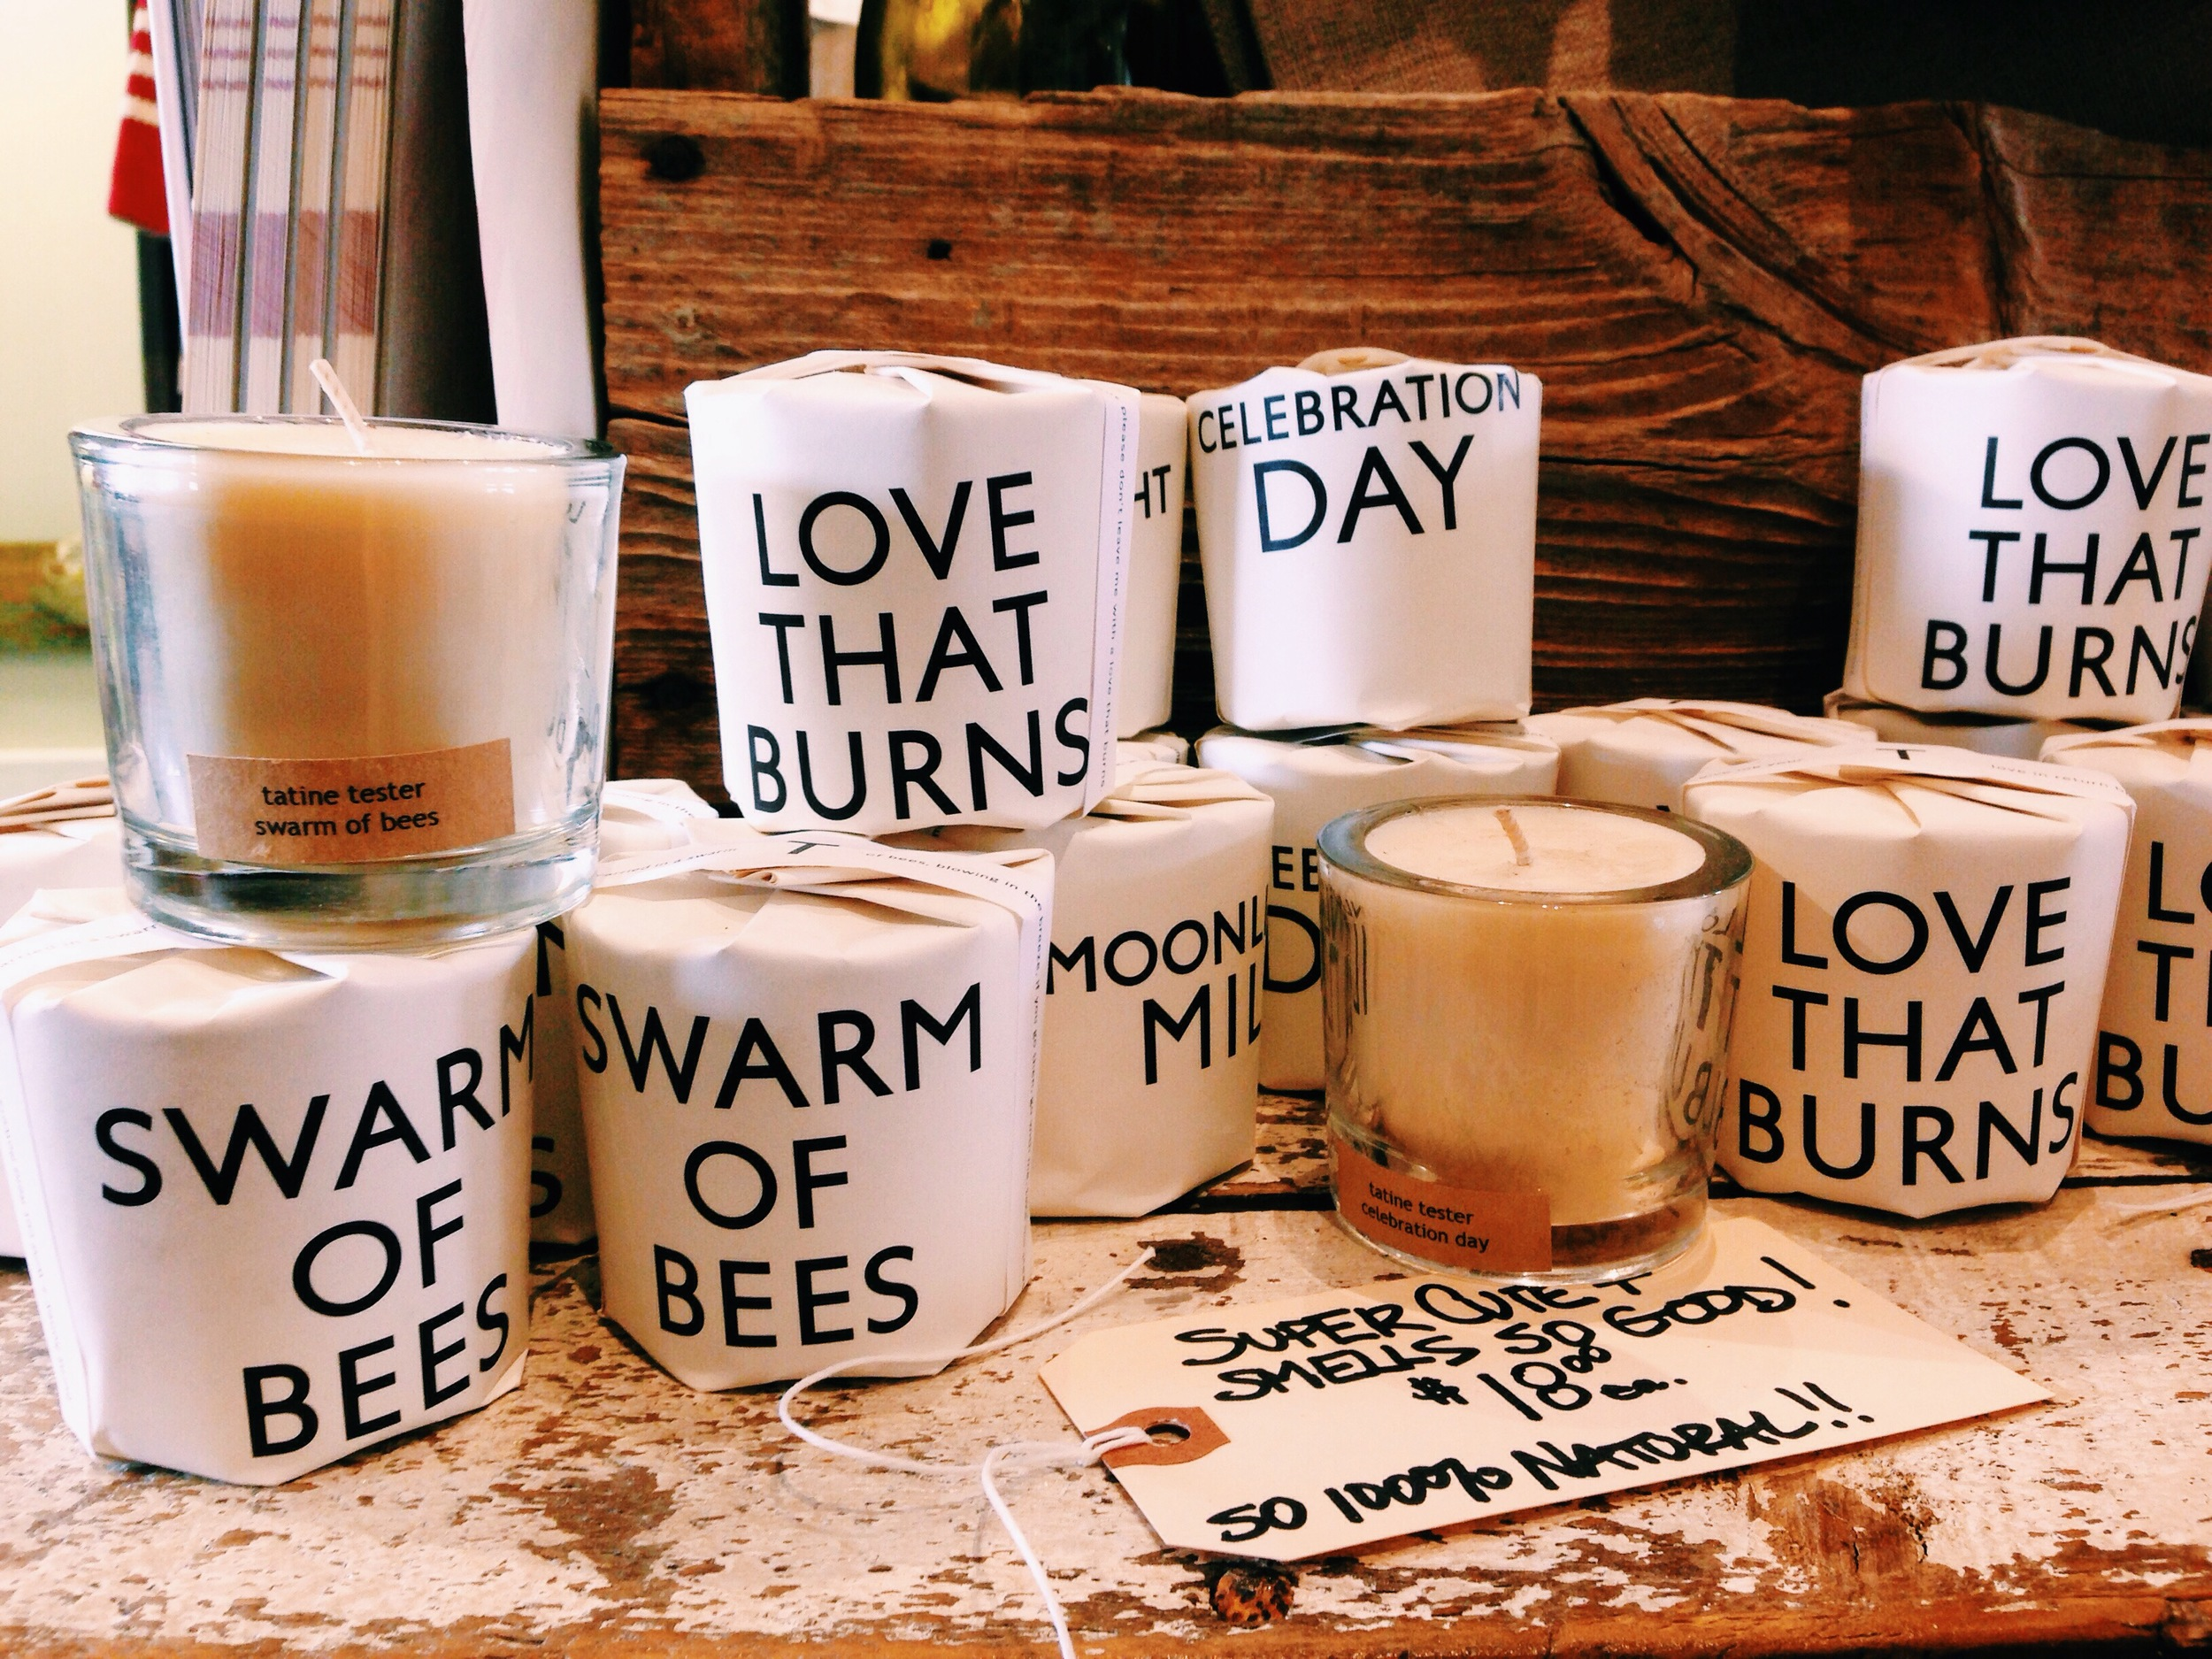 {Some adorable candles that I may have to snatch up for around the house...}